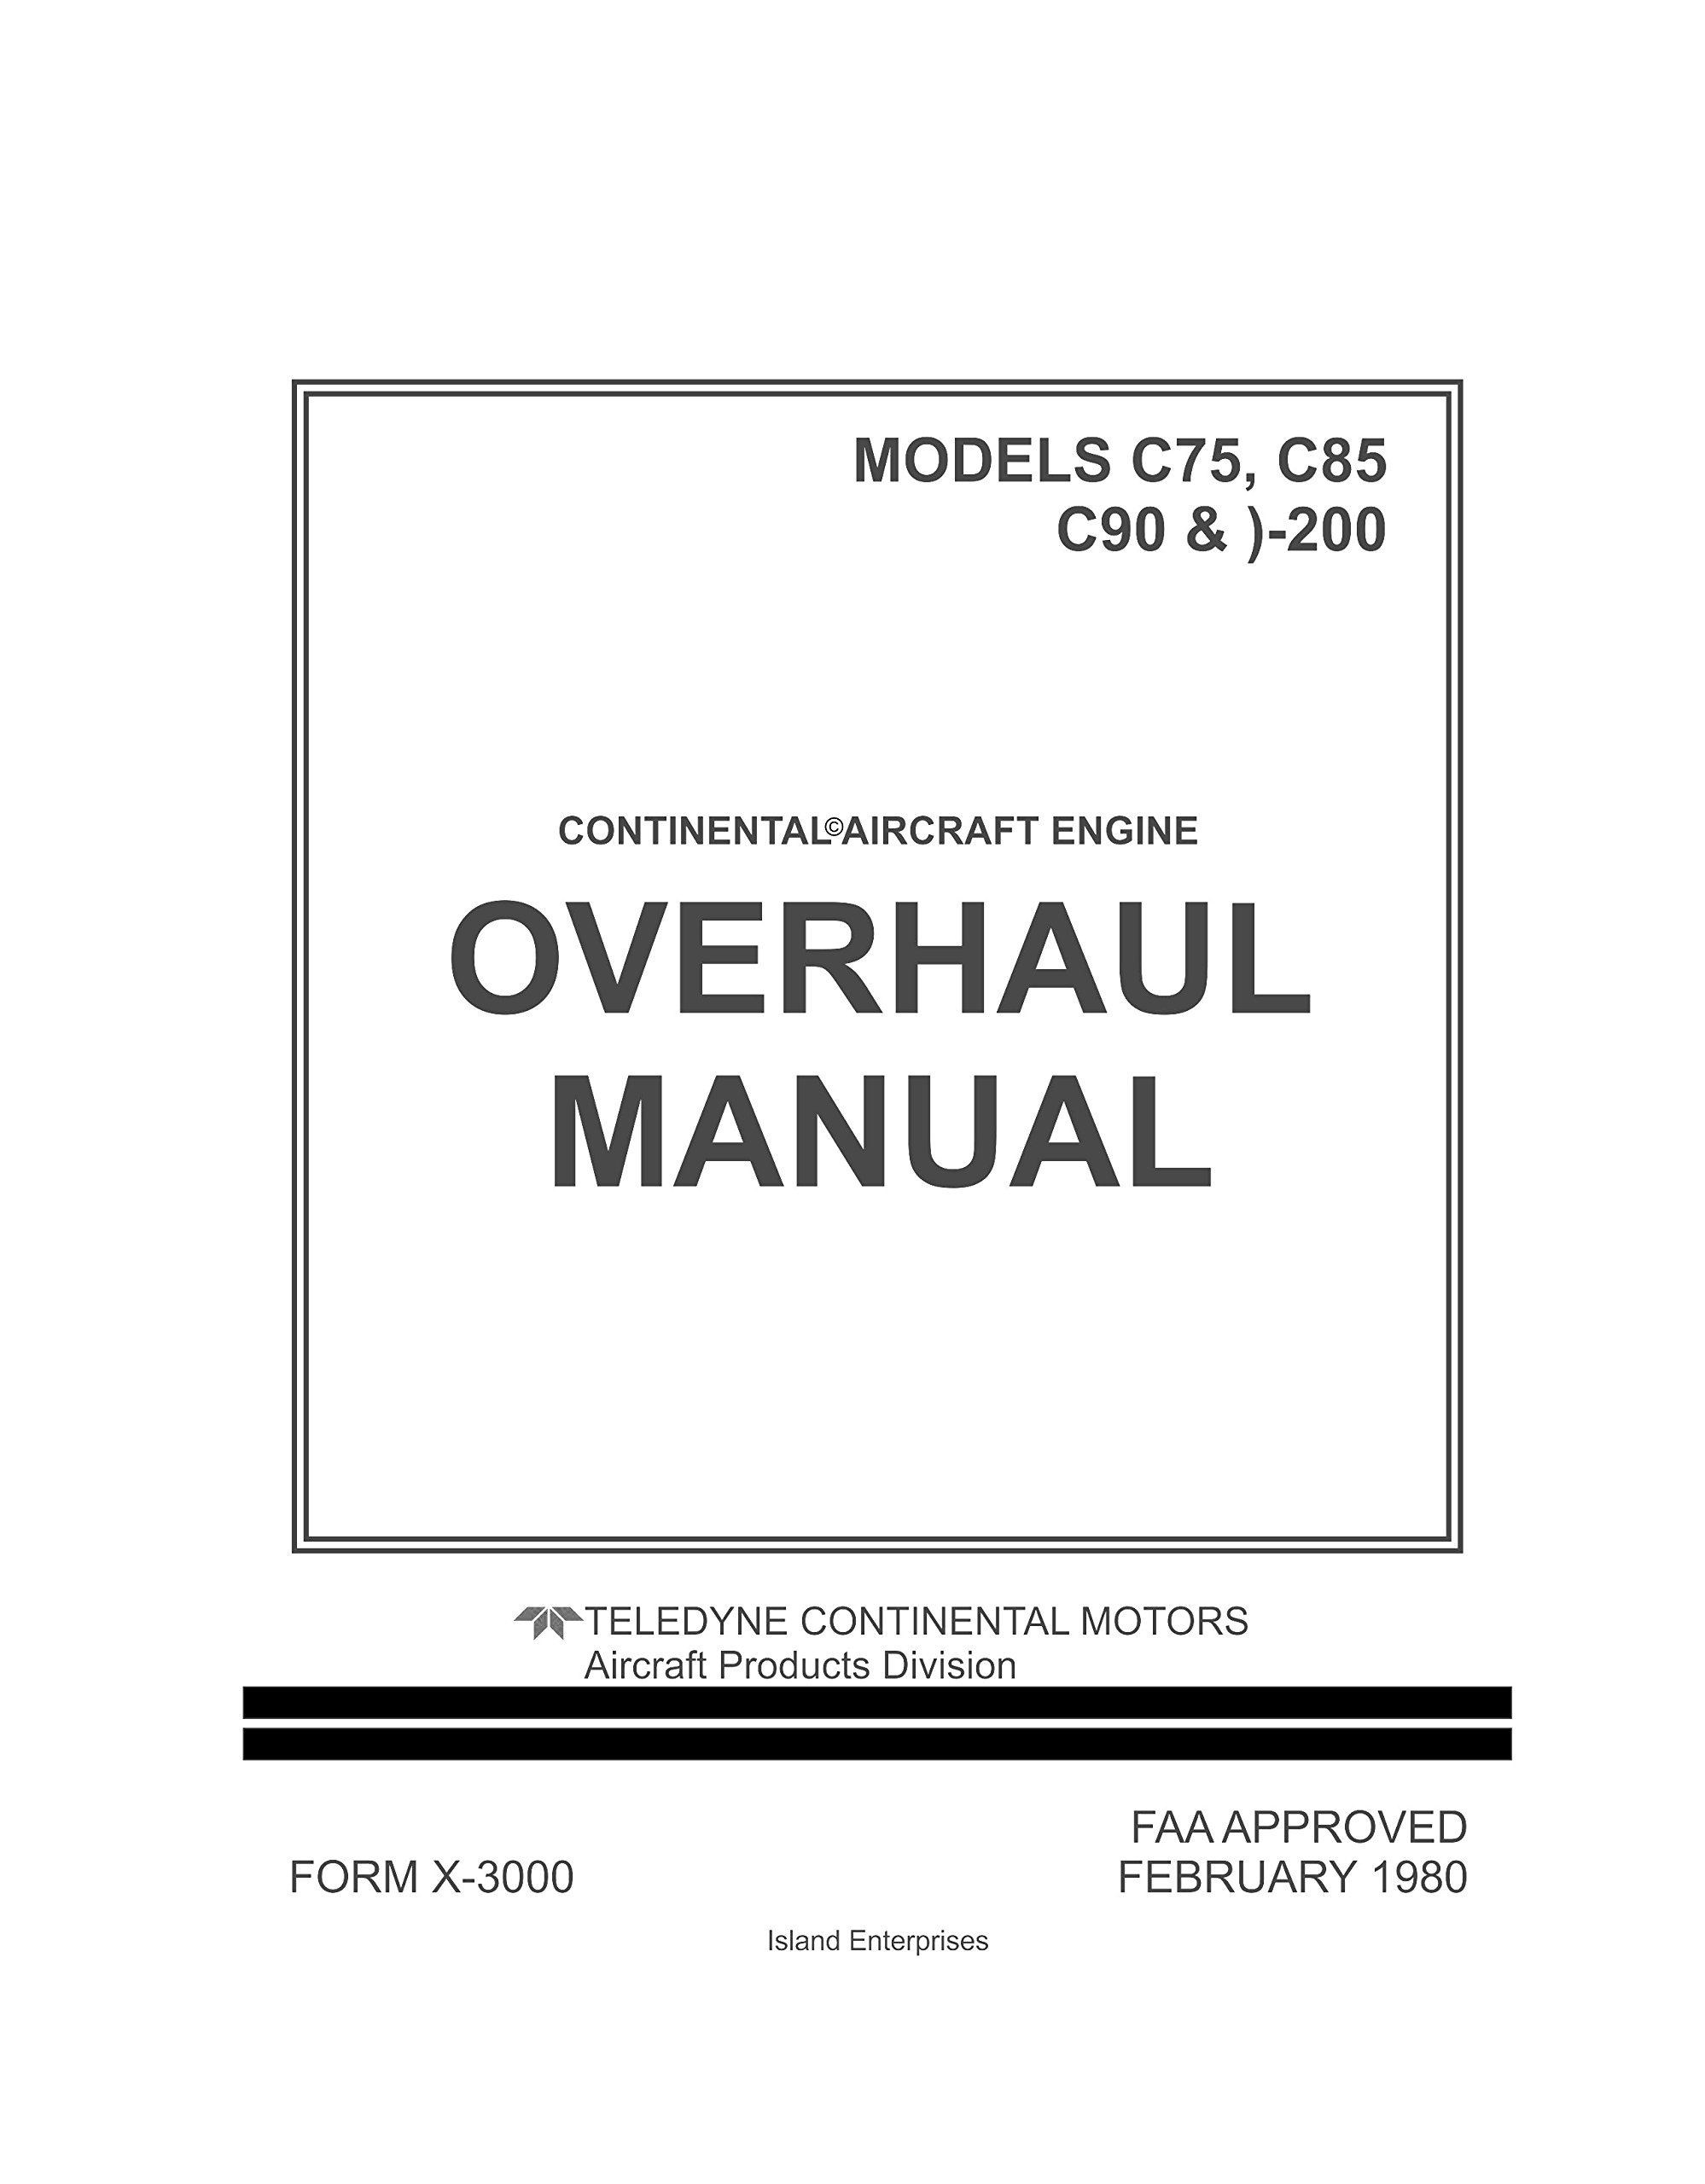 continental overhaul manual for aircraft engine models c75, c85, c90 &  o-200 loose leaf – 1980